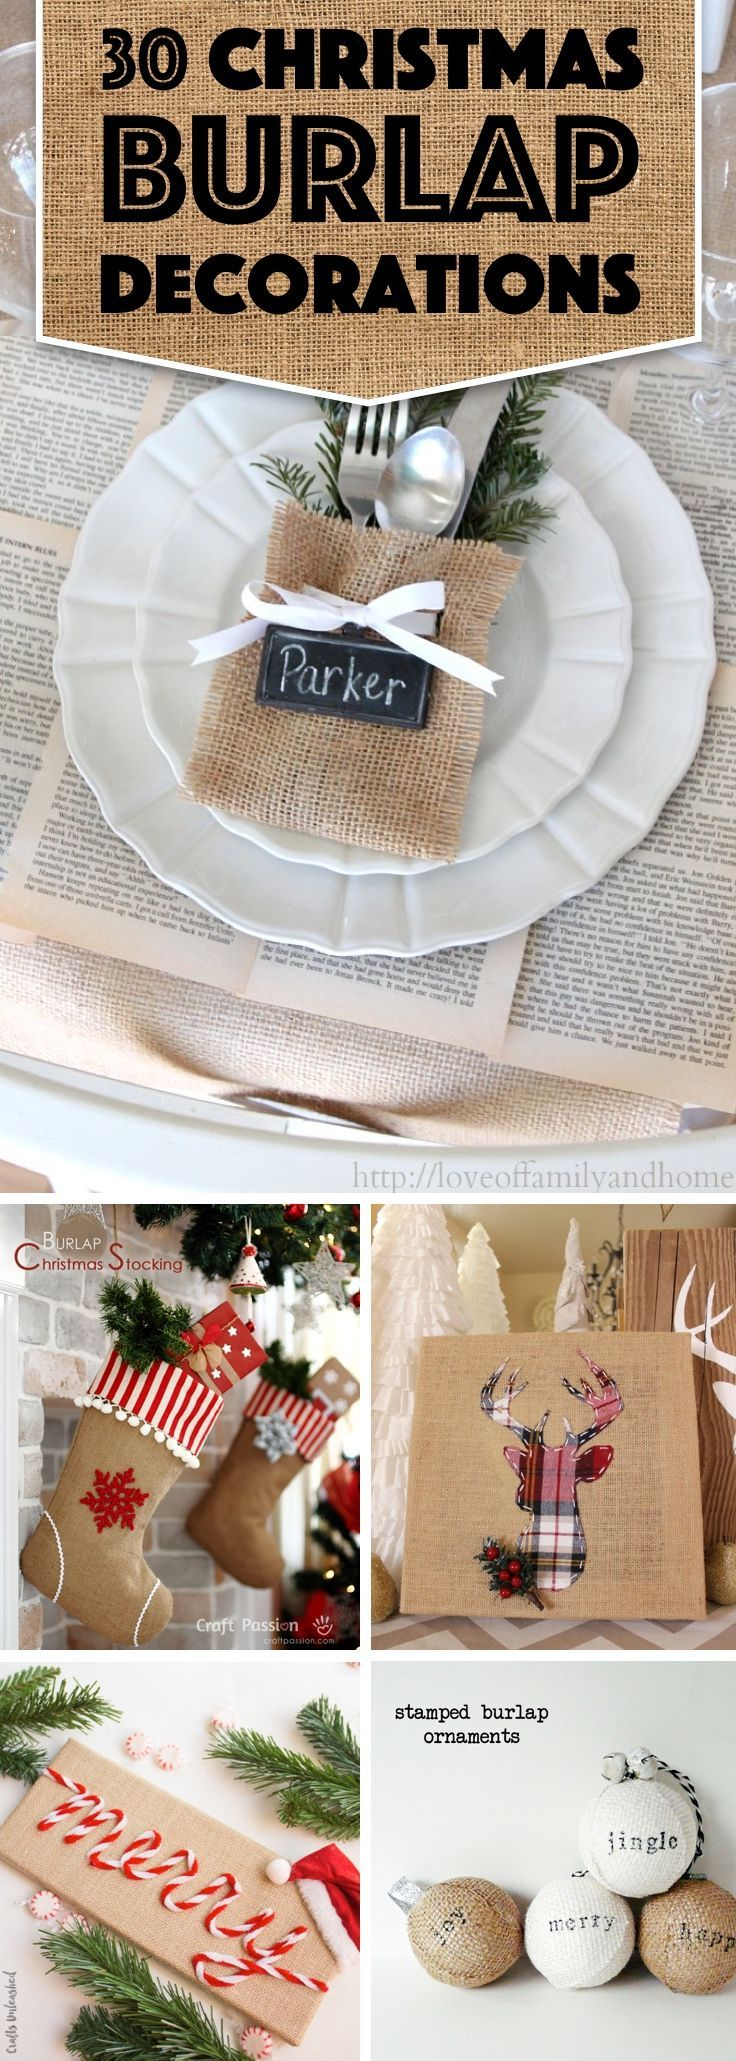 best christmas recipes christmas diy images on pinterest